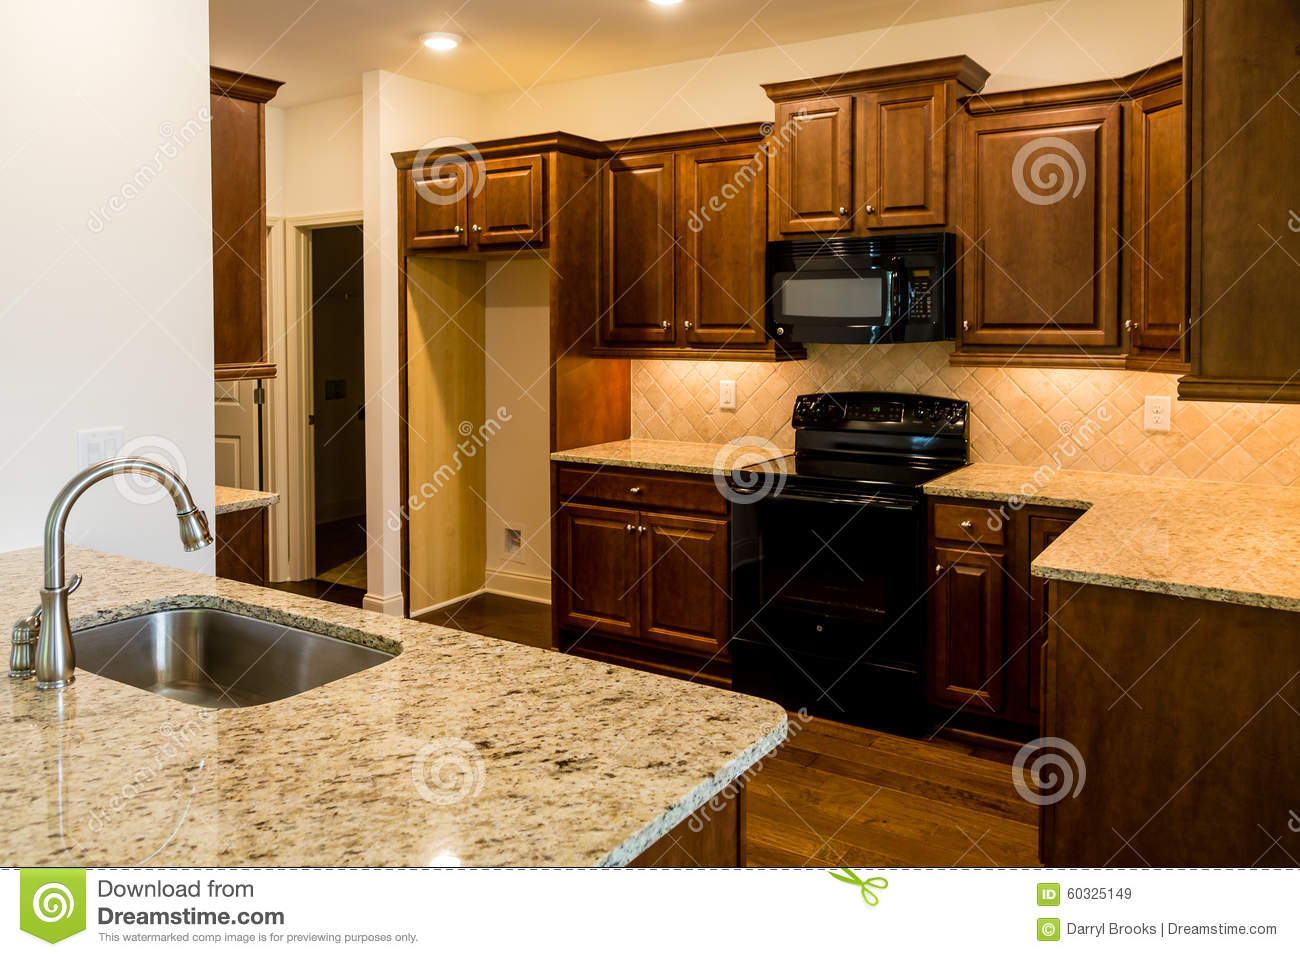 Stainless Steel Sink And Black Appliances Stock Image